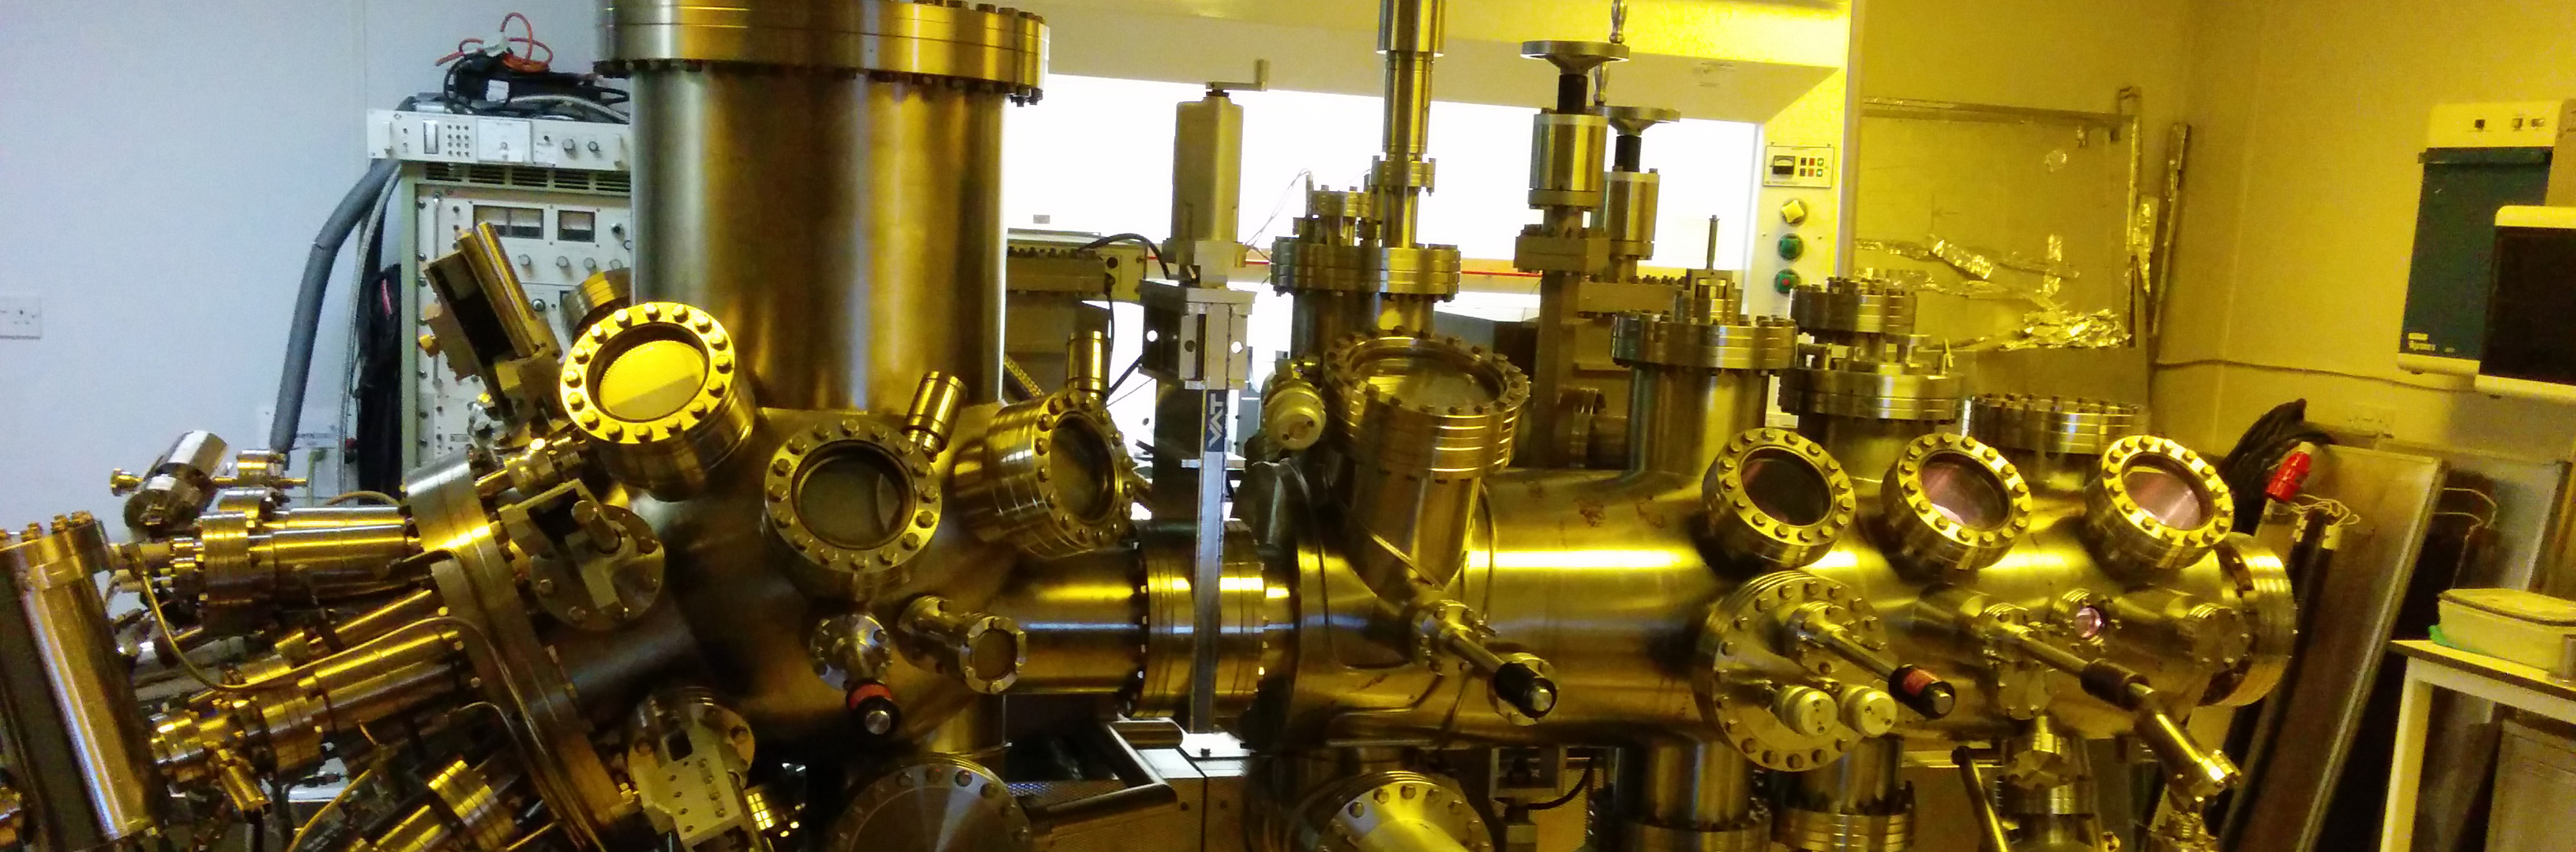 One of the molecular beam epitaxy reactors at Lancaster used to grow quantum rings